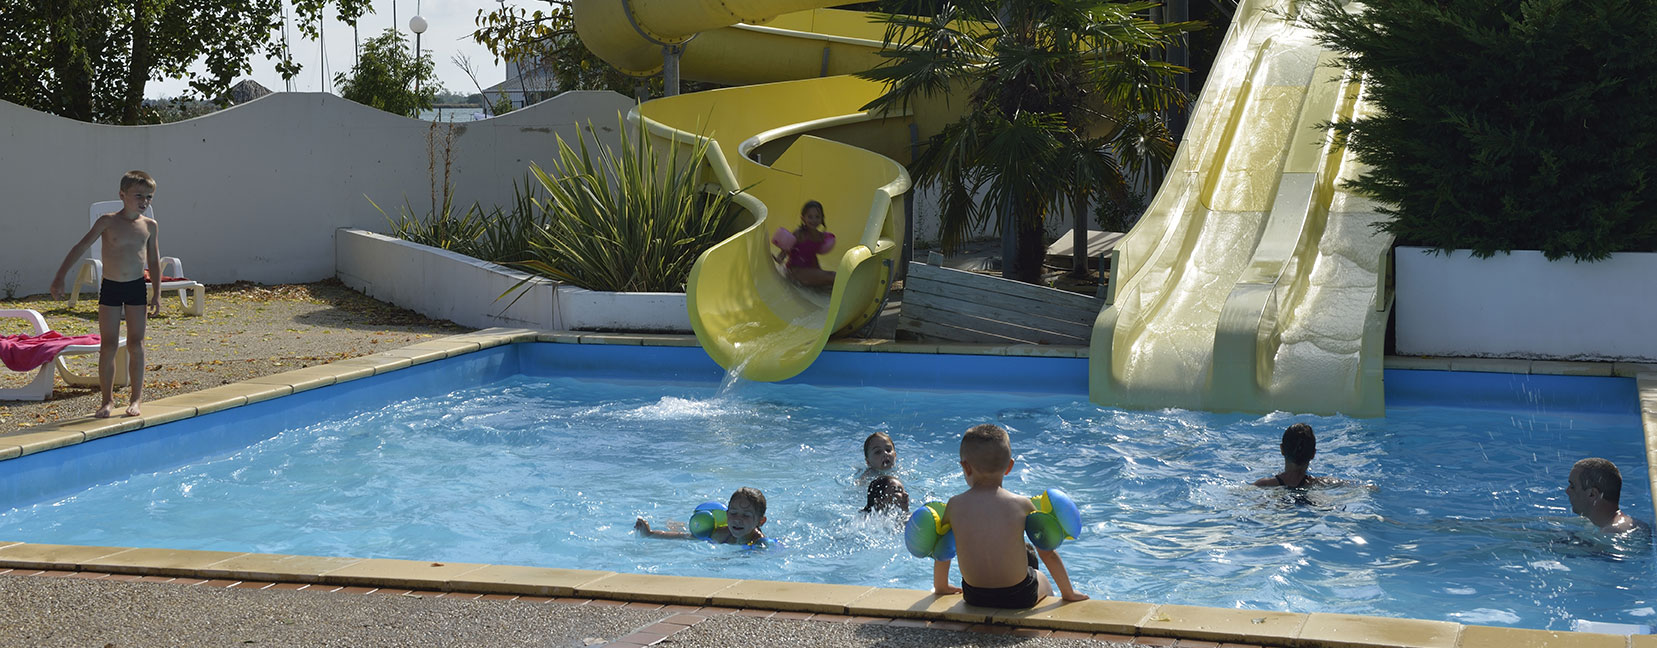 camping-sud-vendee